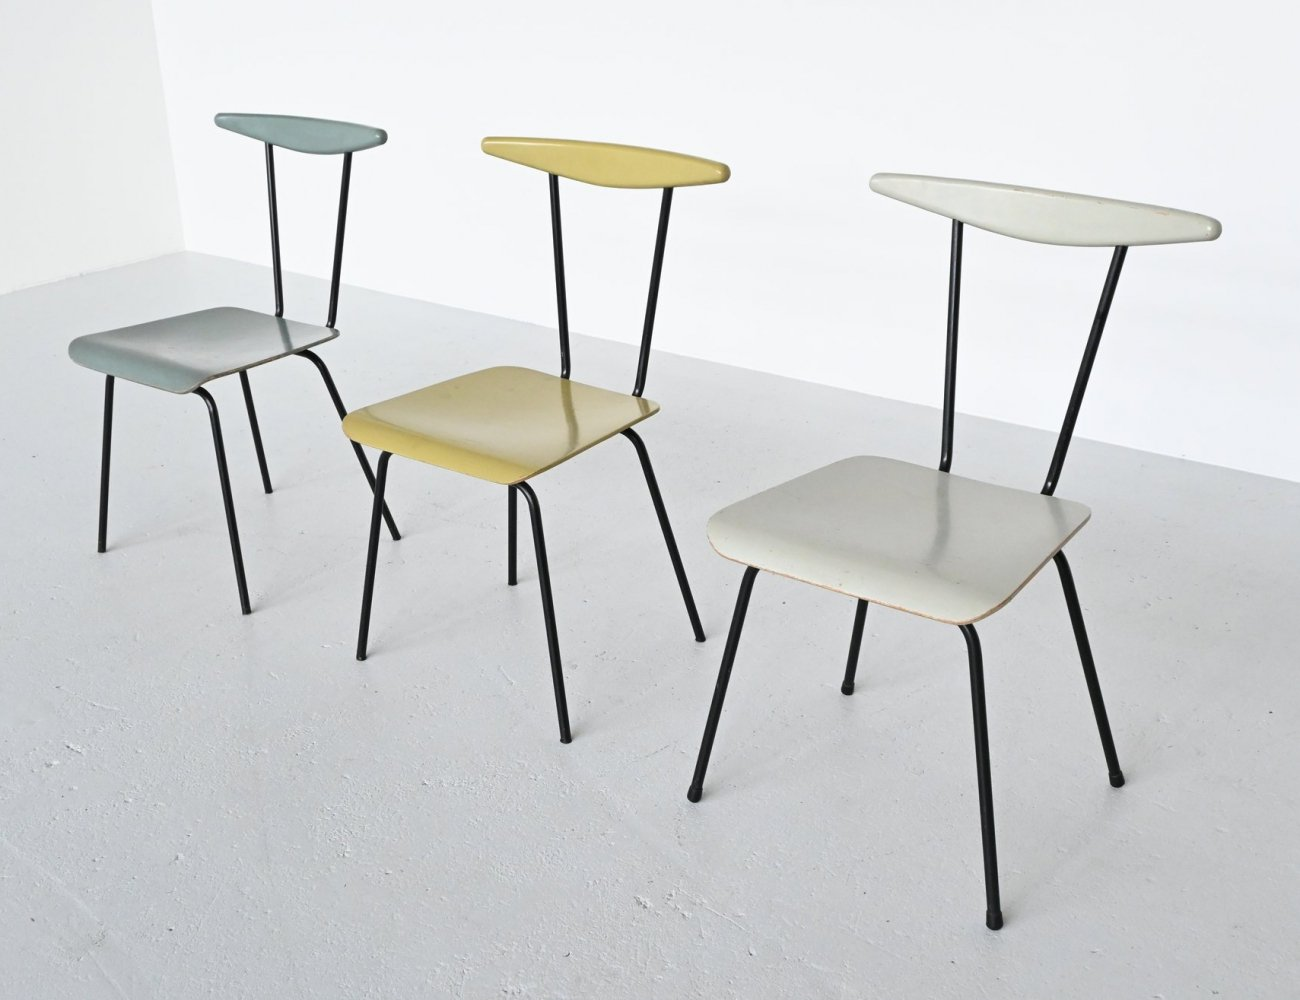 Wim Rietveld Dressboy chairs by Auping, Netherlands 1960